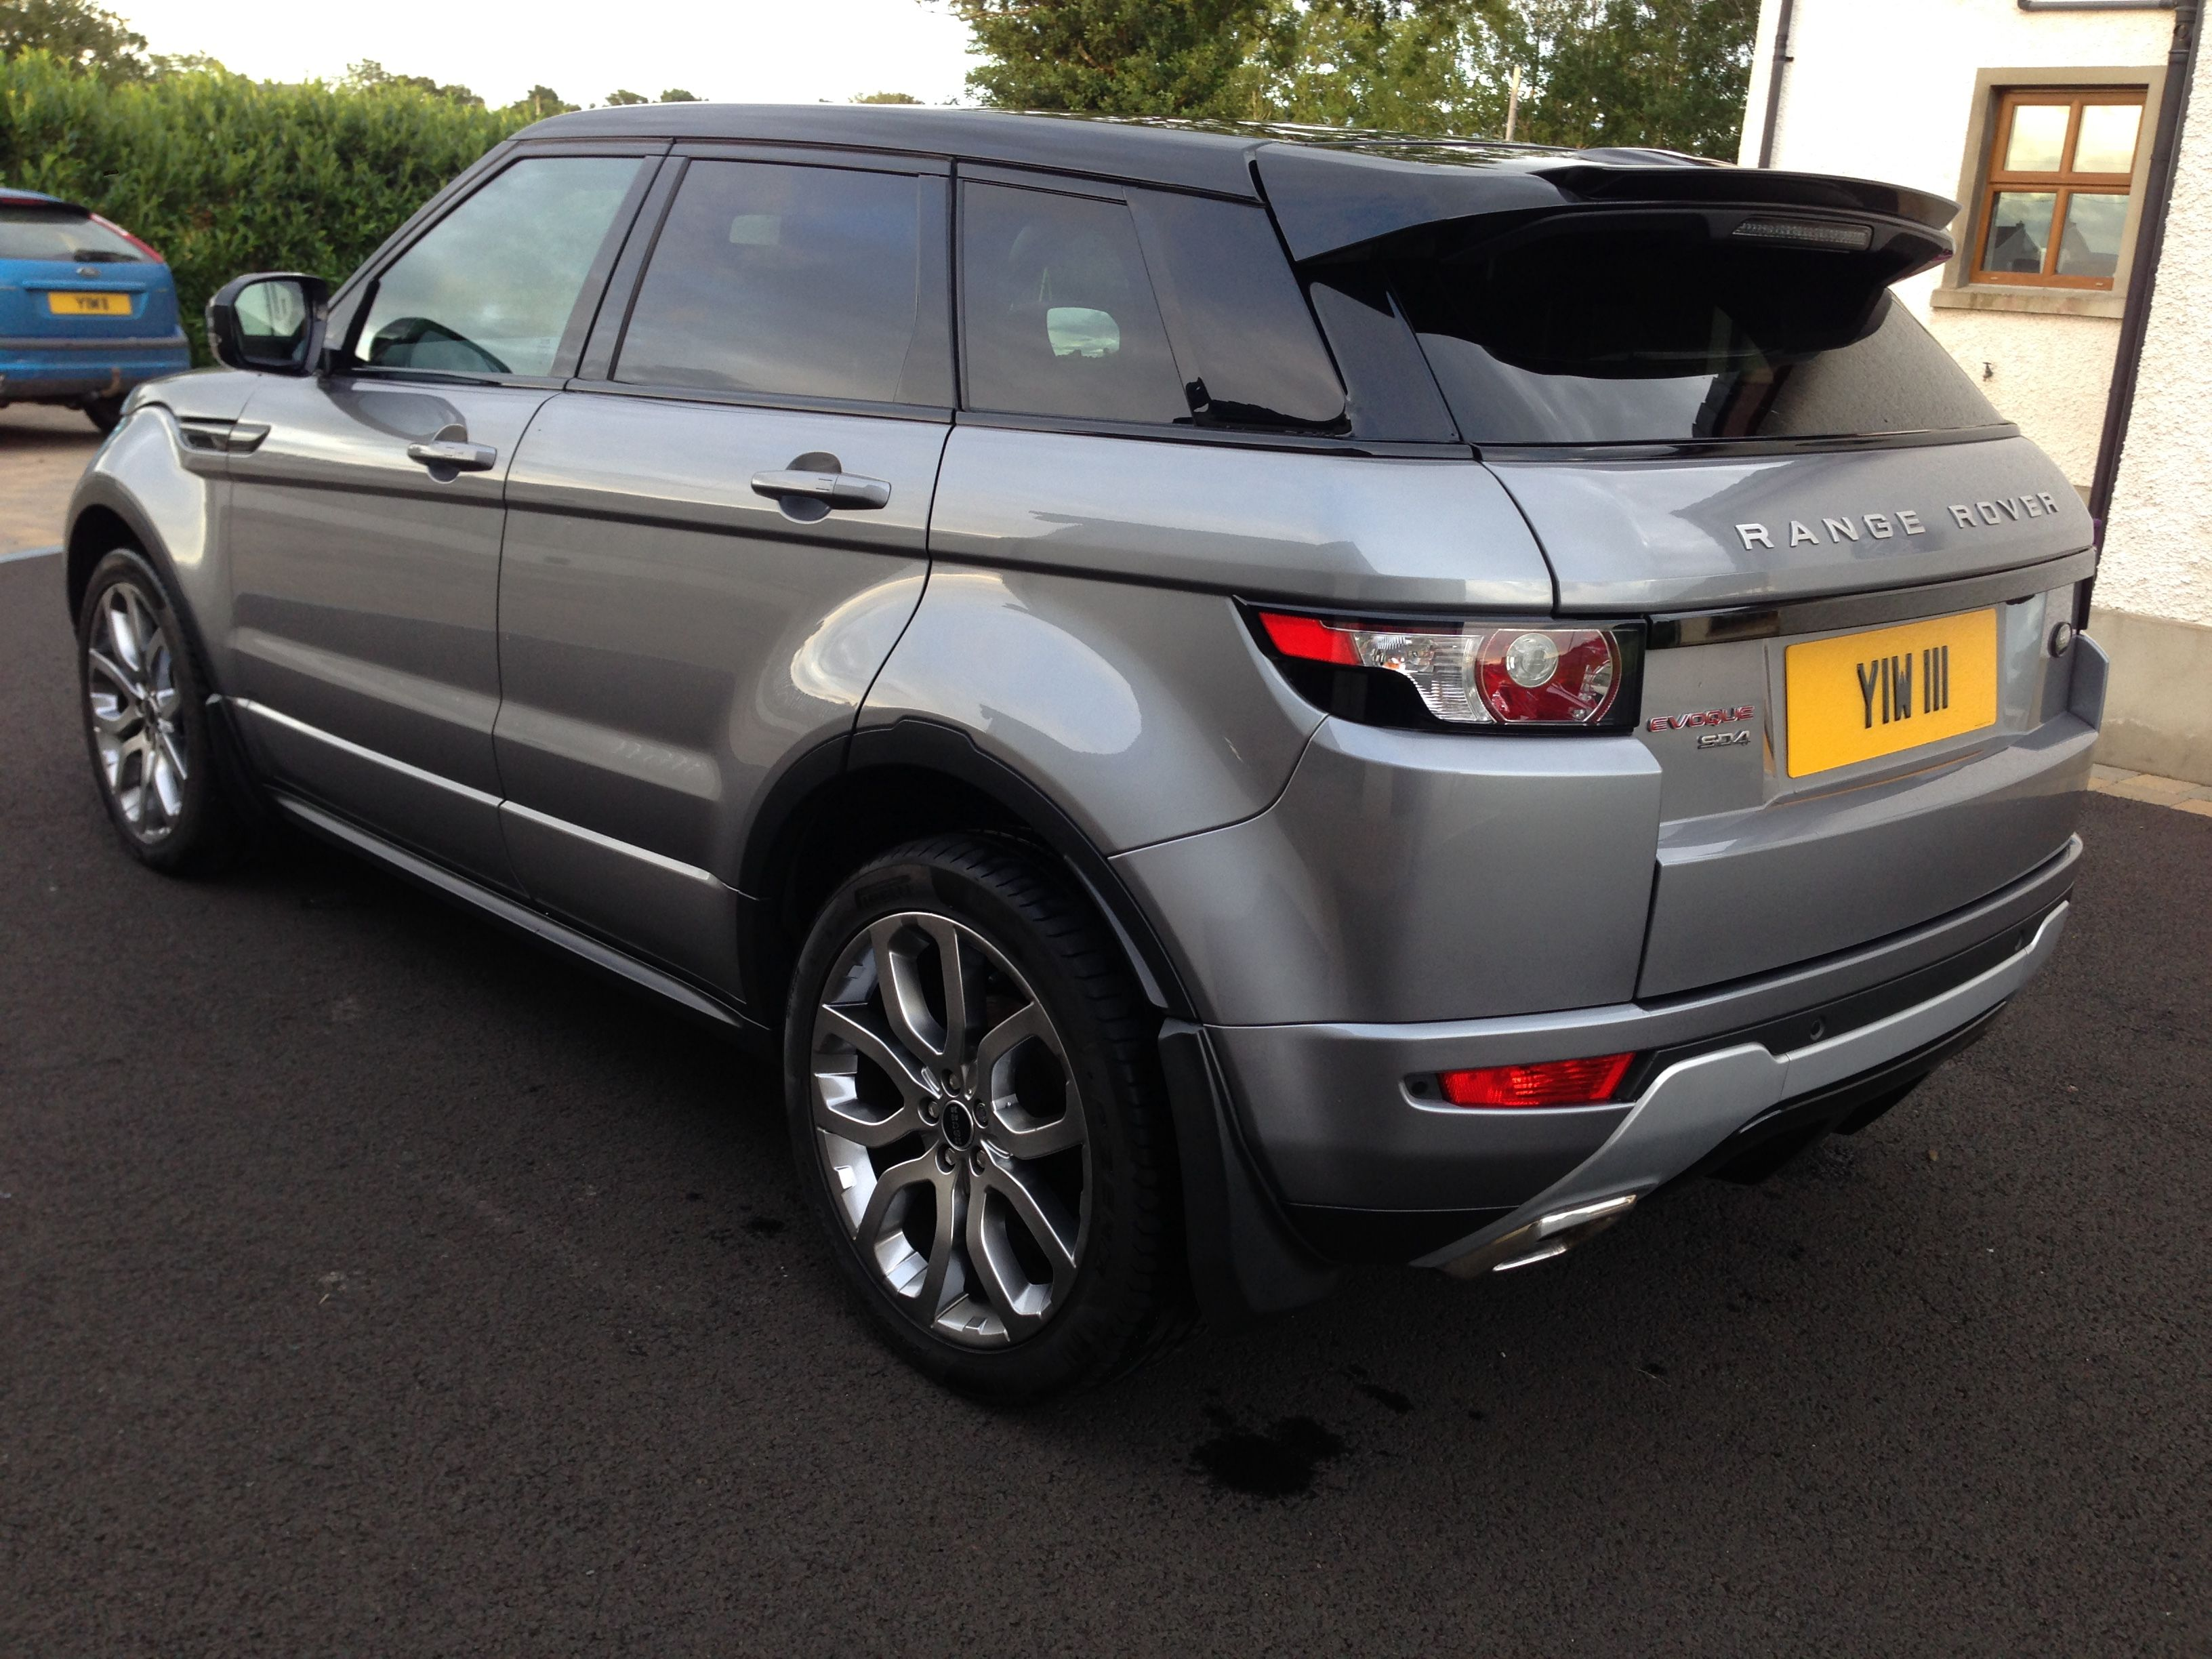 Photo of Range Rover Evoque Orkney Grey Black Roof Panoramic SD4 Dynamic YIW 111